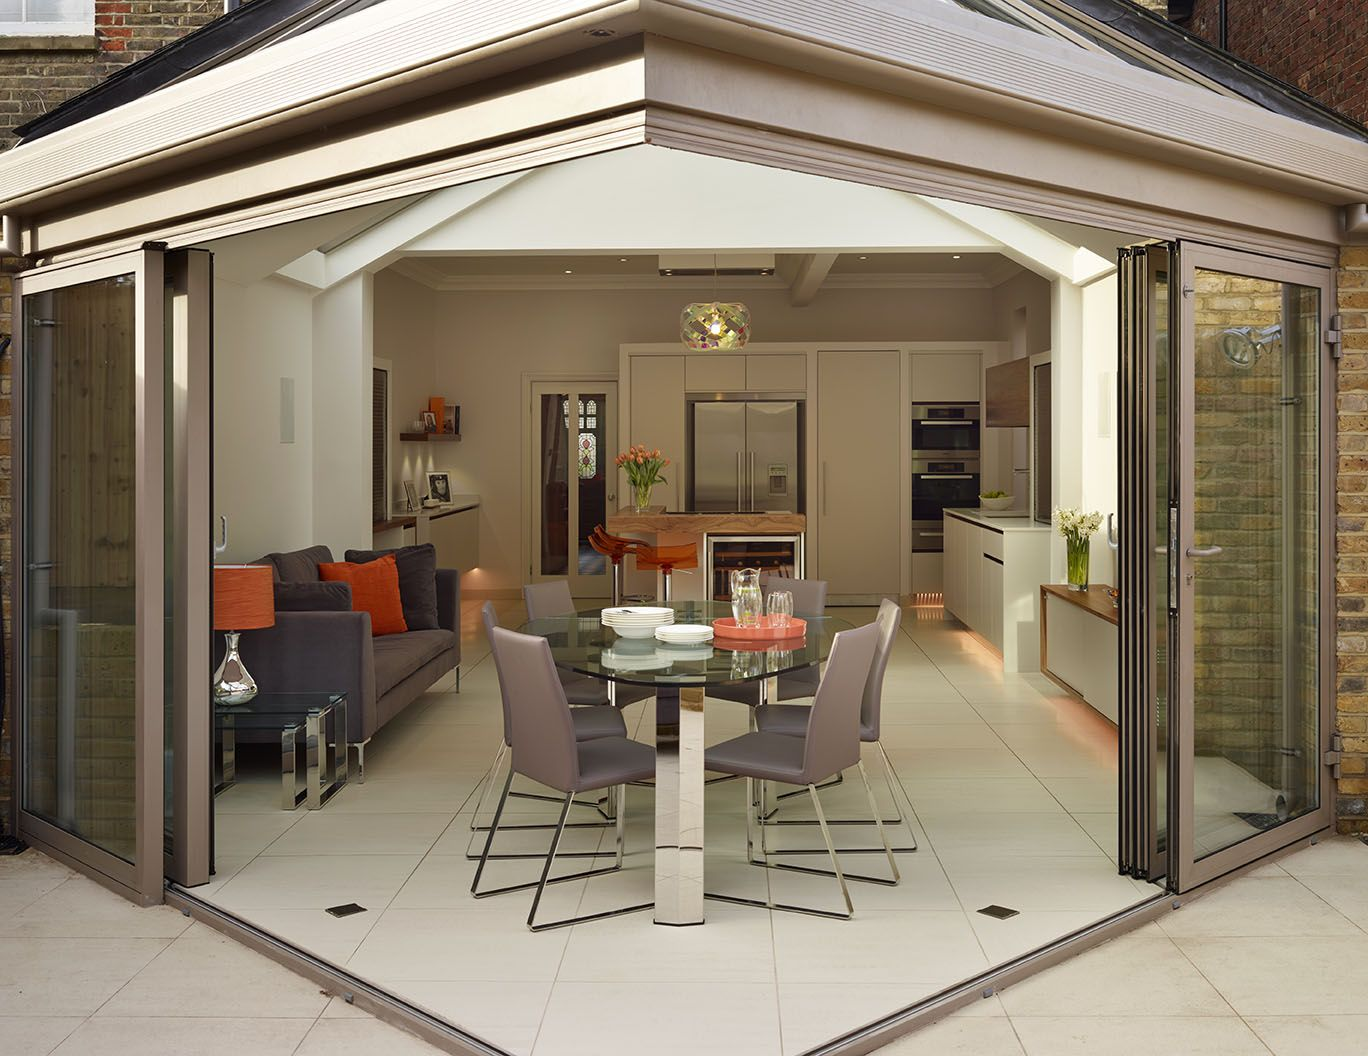 Roundhouse bespoke kitchen contributes to a seamless flow ... on Bespoke Outdoor Living id=12189